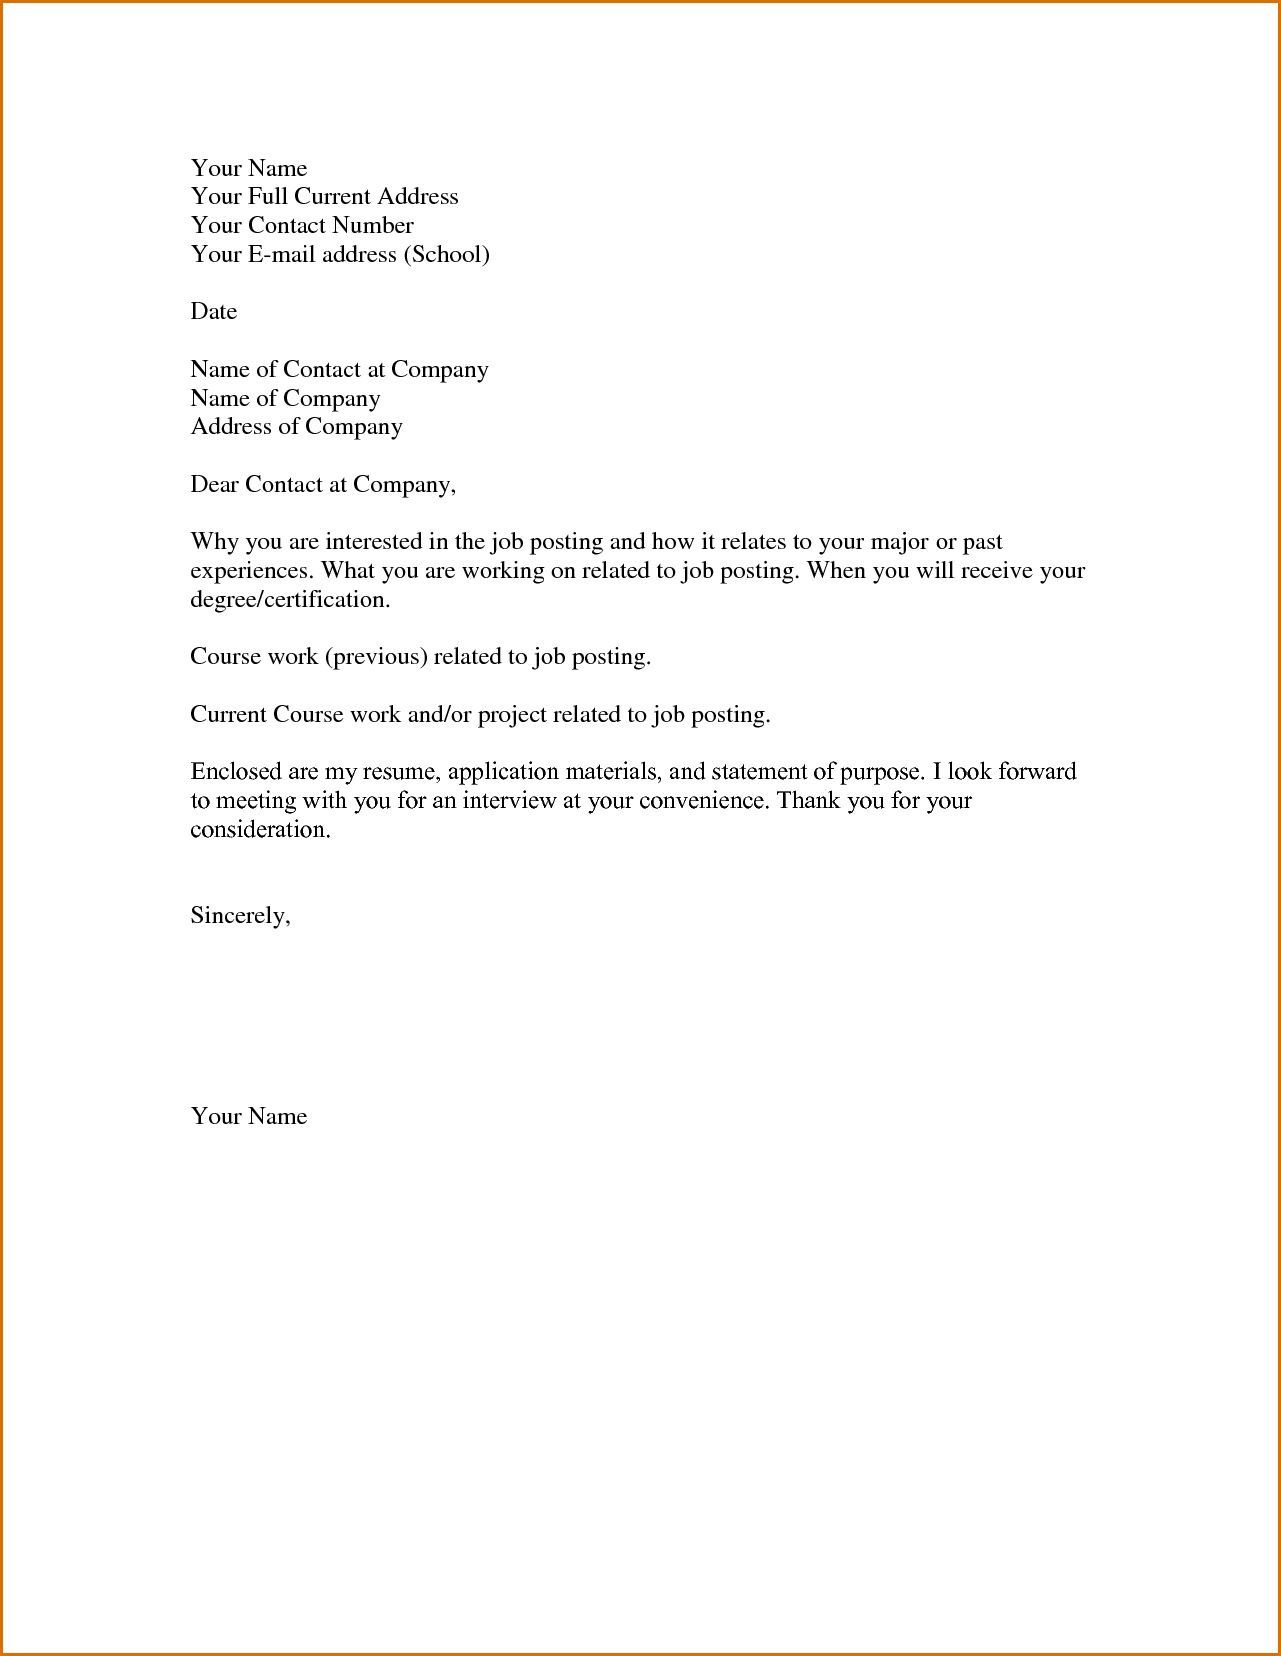 003 Stunning Basic Covering Letter Template Picture  Simple Application Word Example Of Job CoverFull